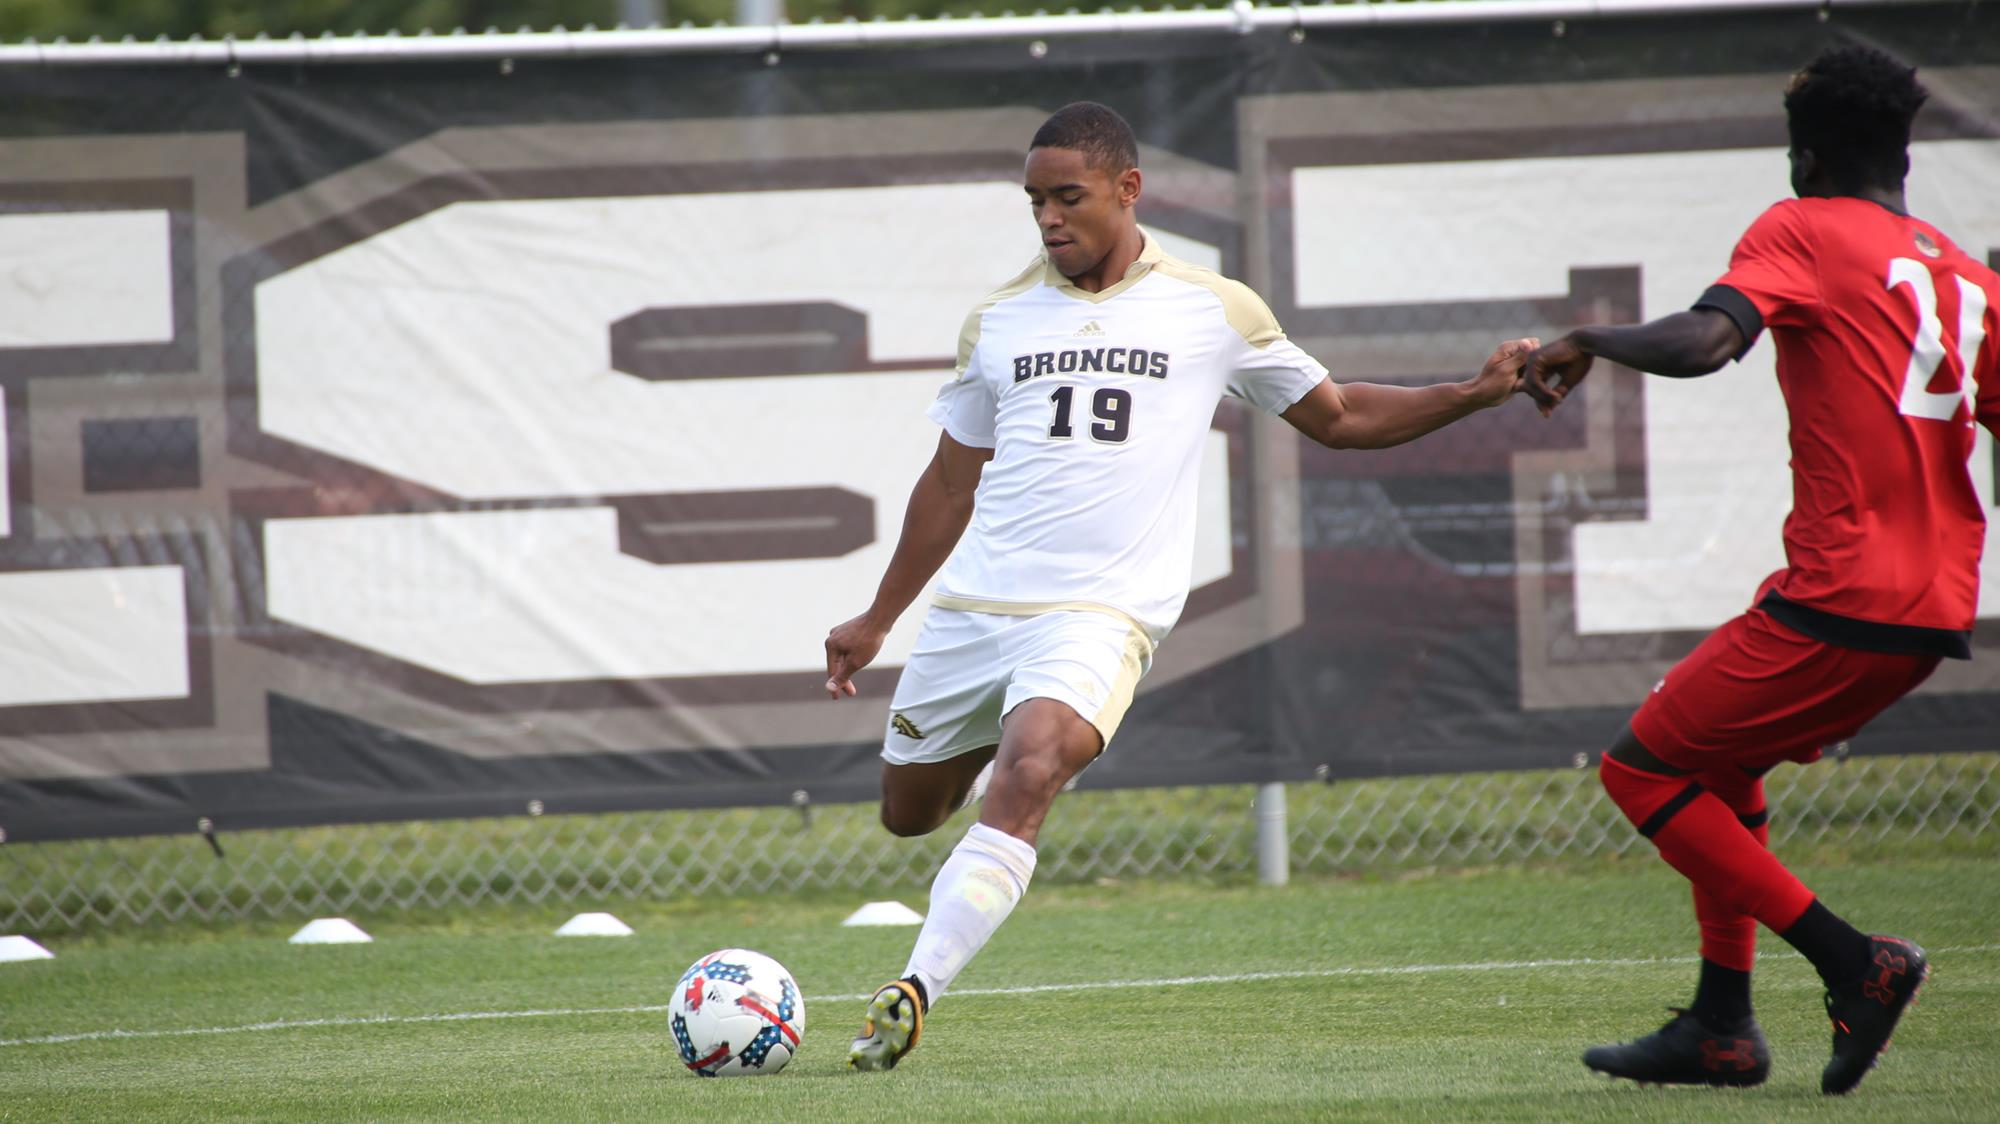 College Soccer News National Team of the Week  College Soccer News National Player of the Week